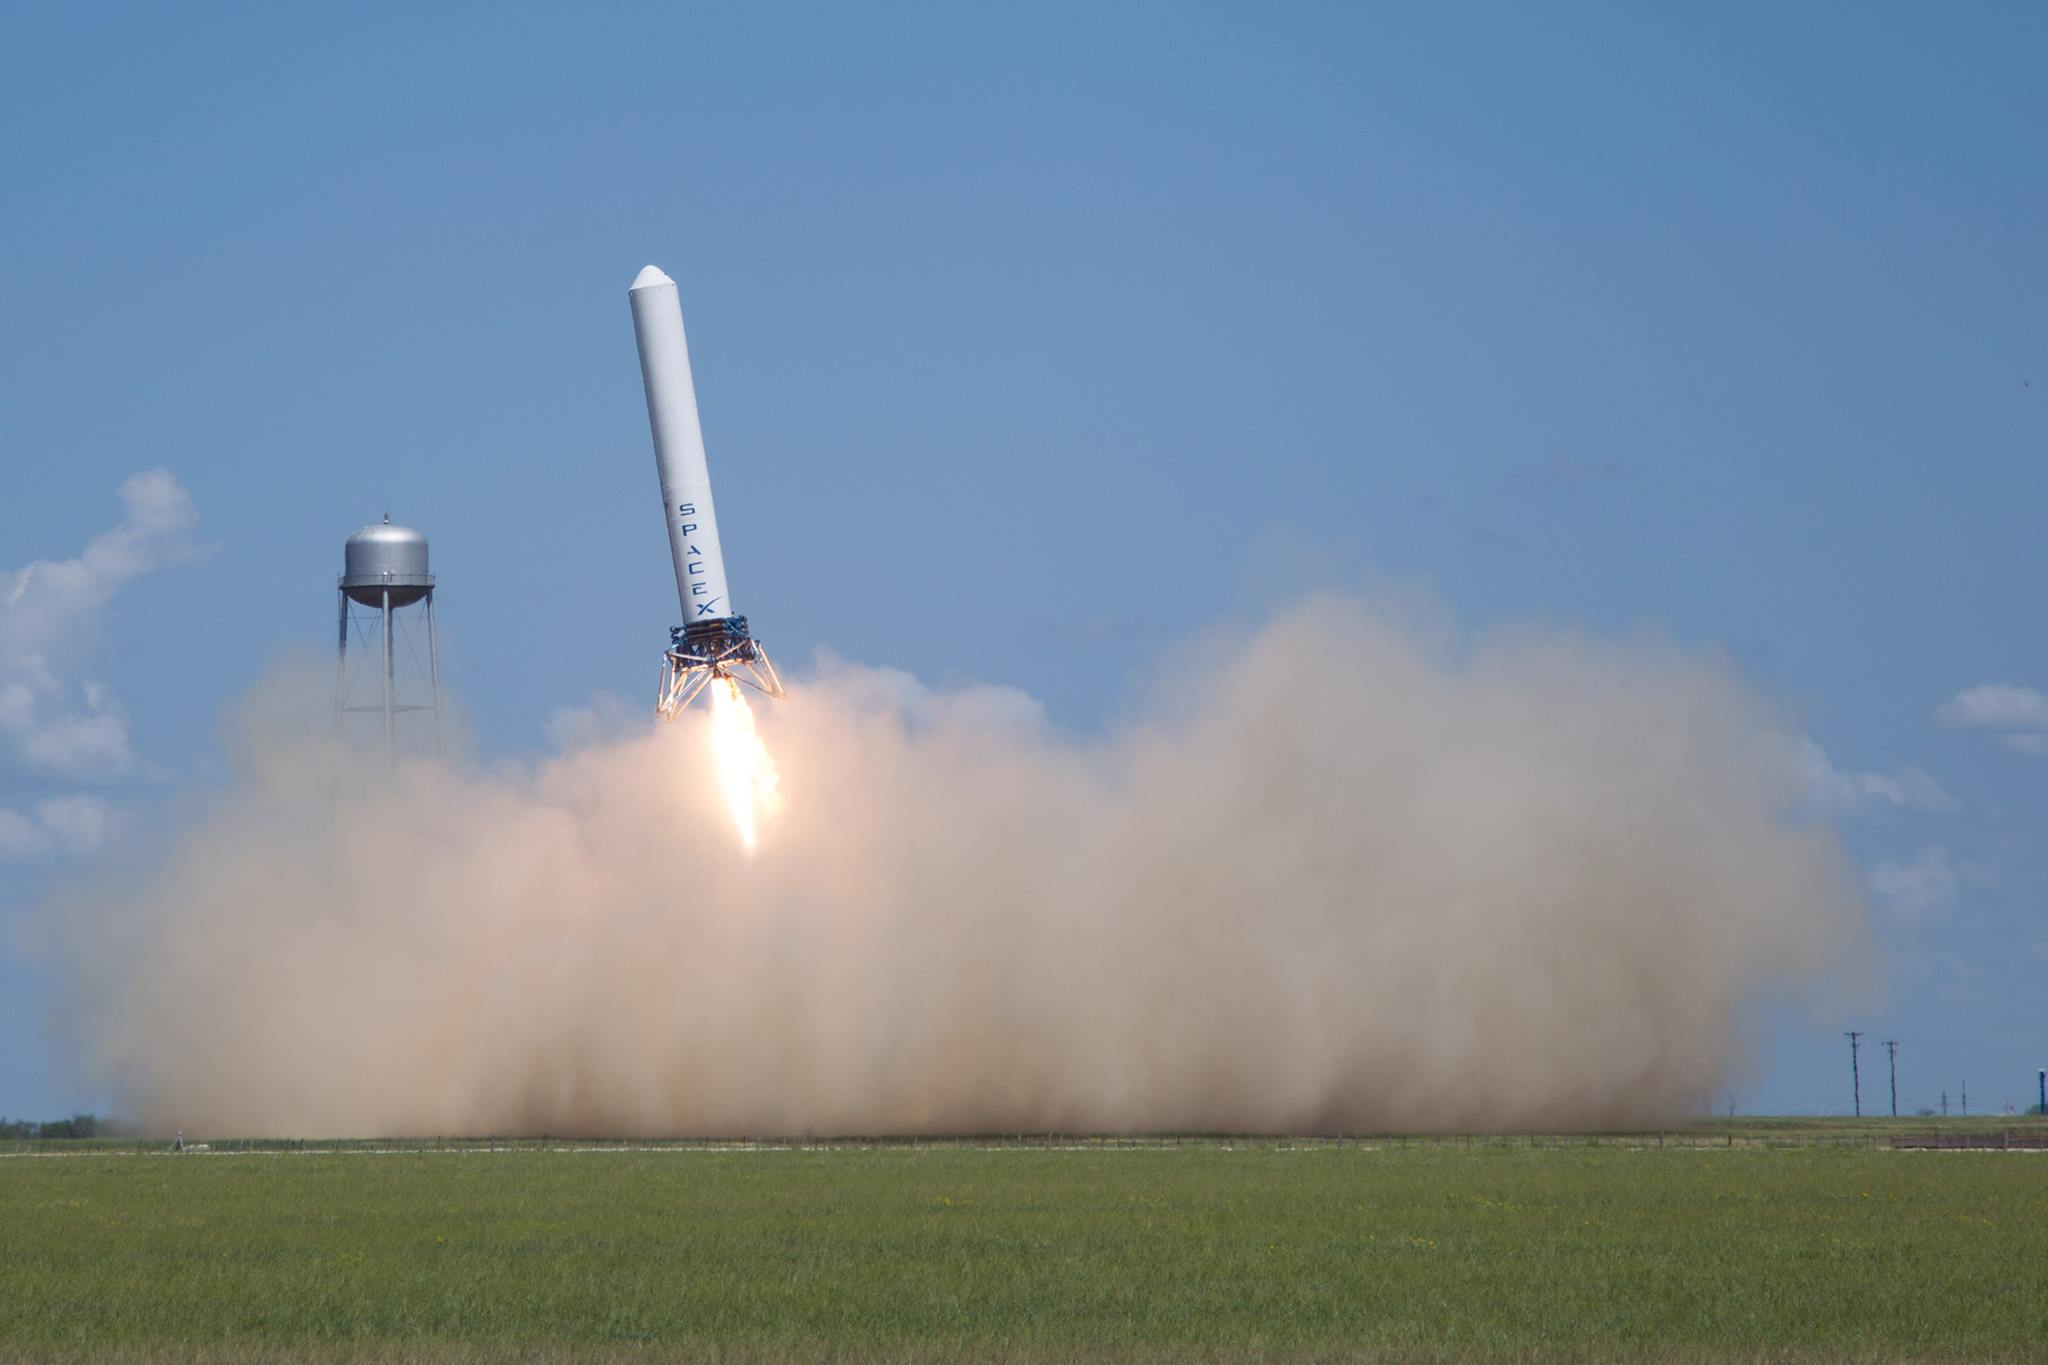 SpaceX Grasshopper test article MacGregor Texas posted on The SpaceFlight Group Insider